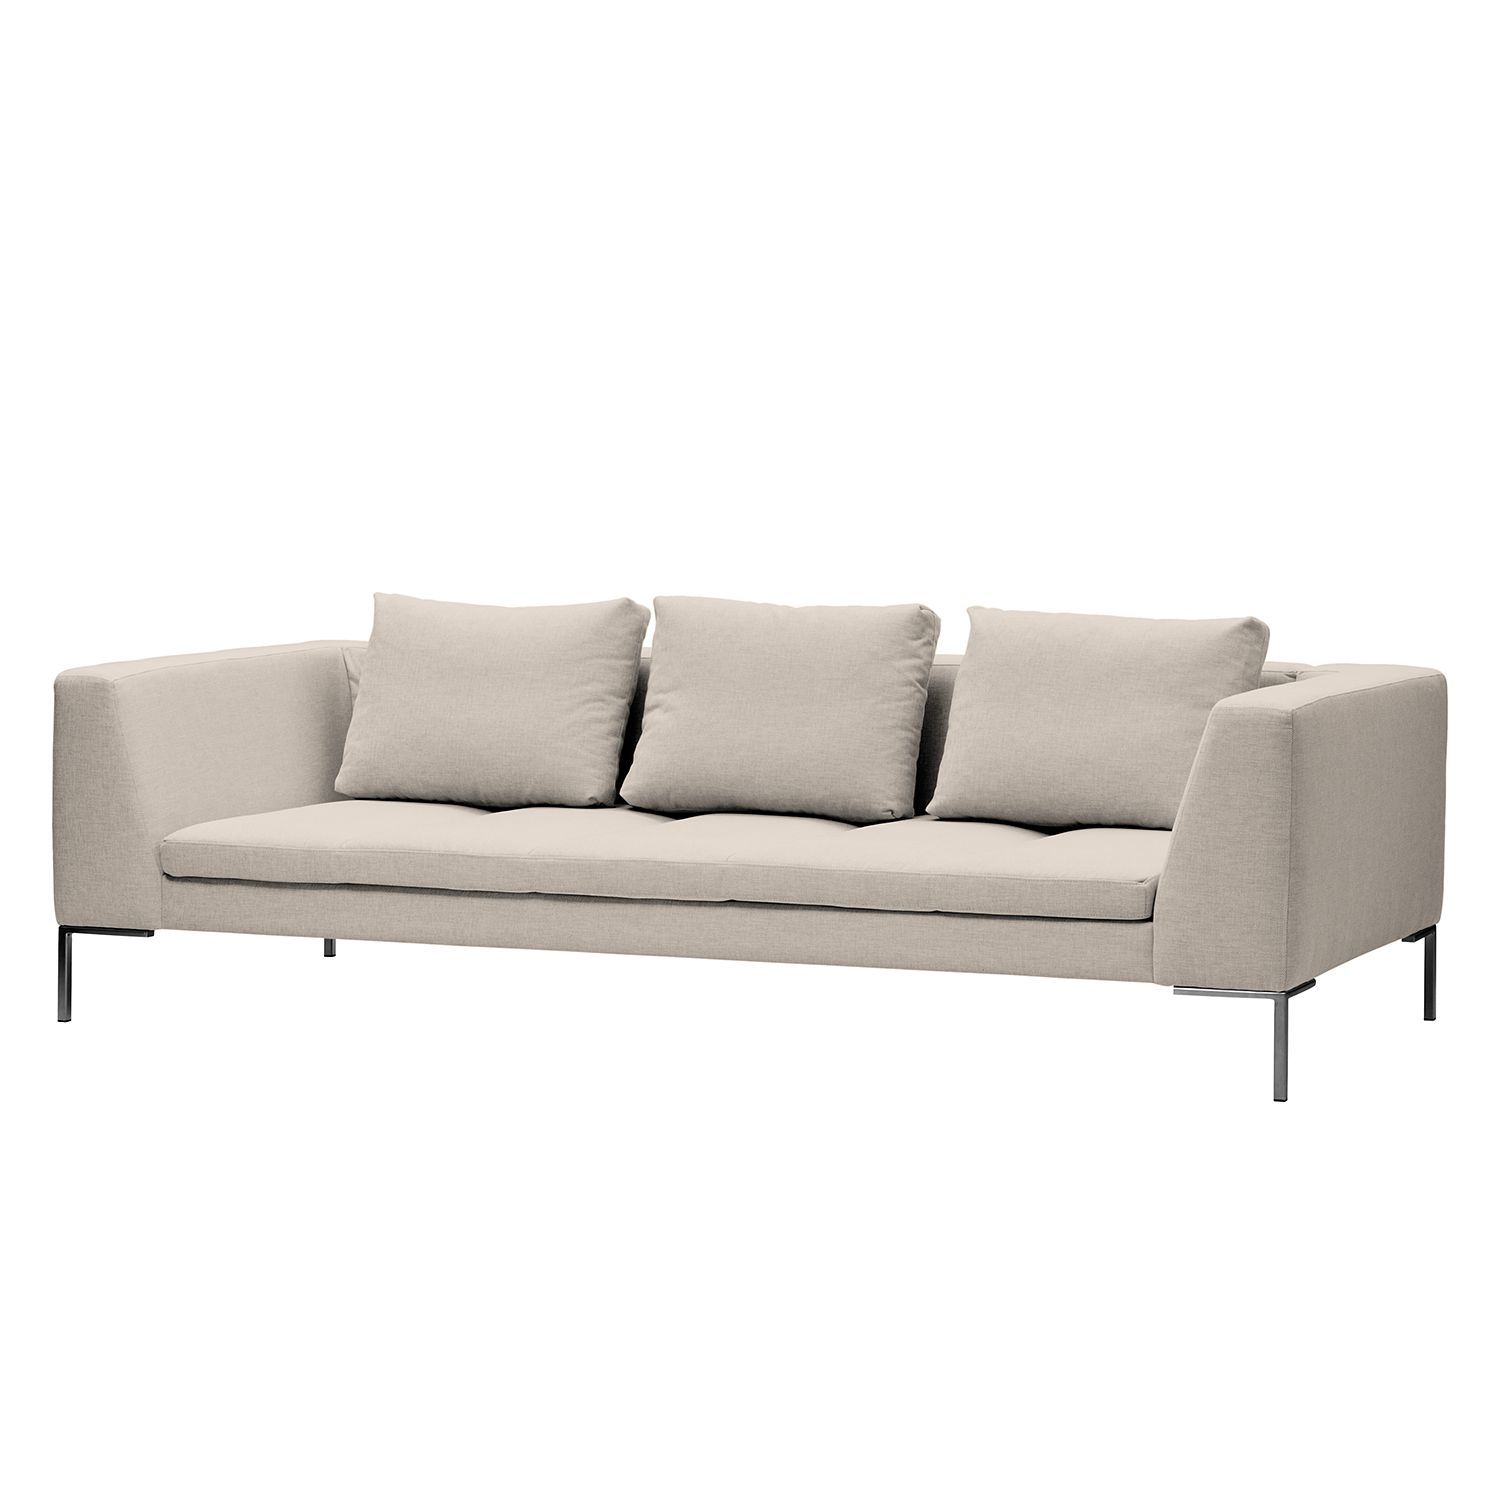 sofa madison 3 sitzer webstoff stoff saia beige. Black Bedroom Furniture Sets. Home Design Ideas